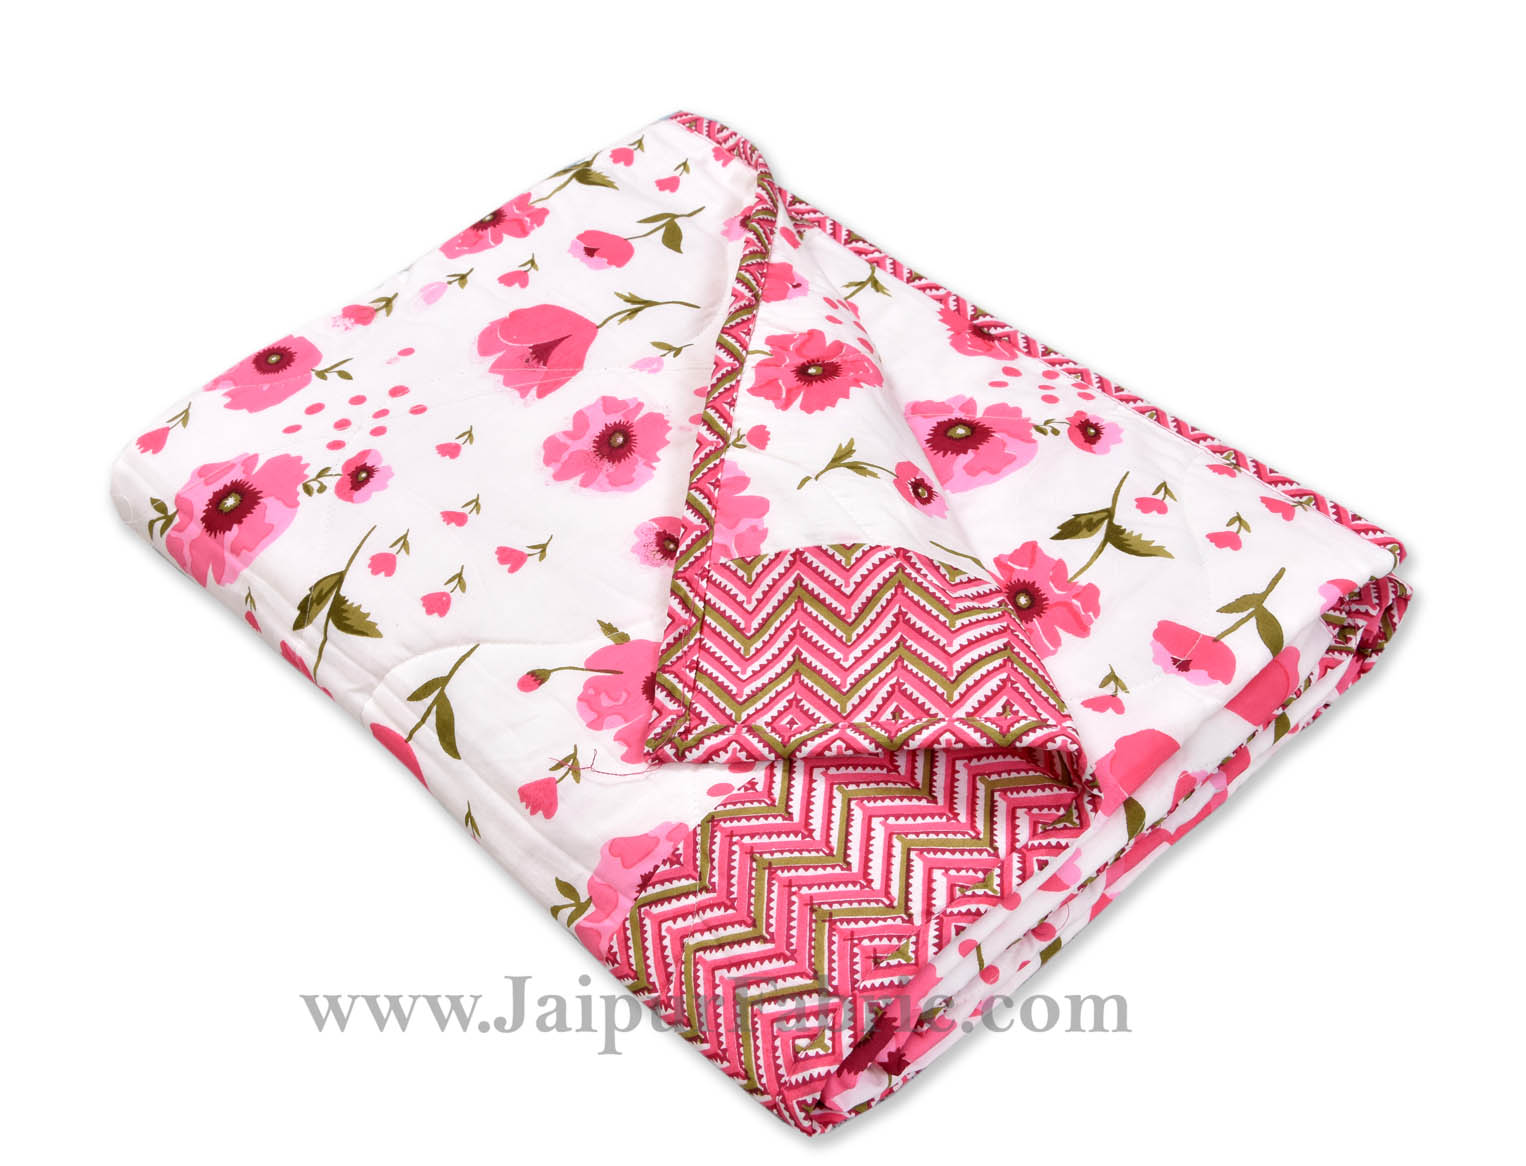 Baby Blanket New Born Pink & White Crib Comforter Toddler Baby Quilt Soft Cute Kids Quilt 120 x 120 cm Multi color